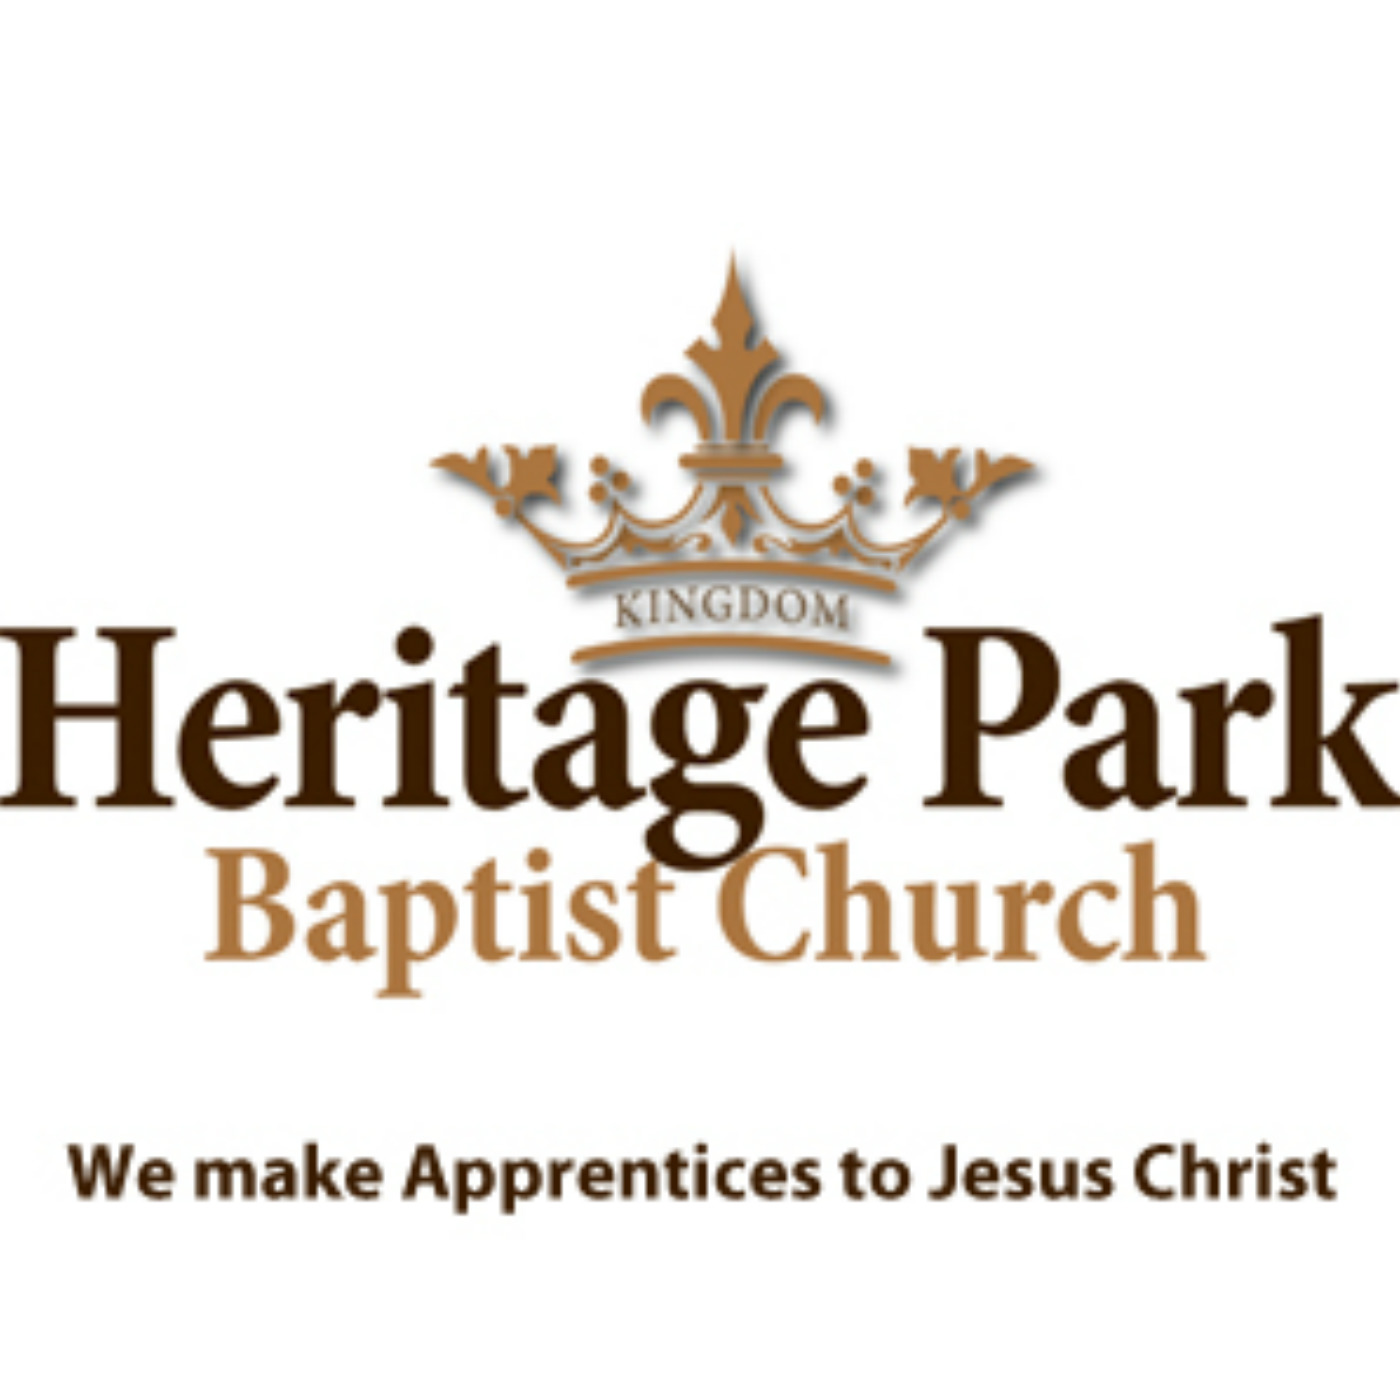 Heritage Park Baptist Church